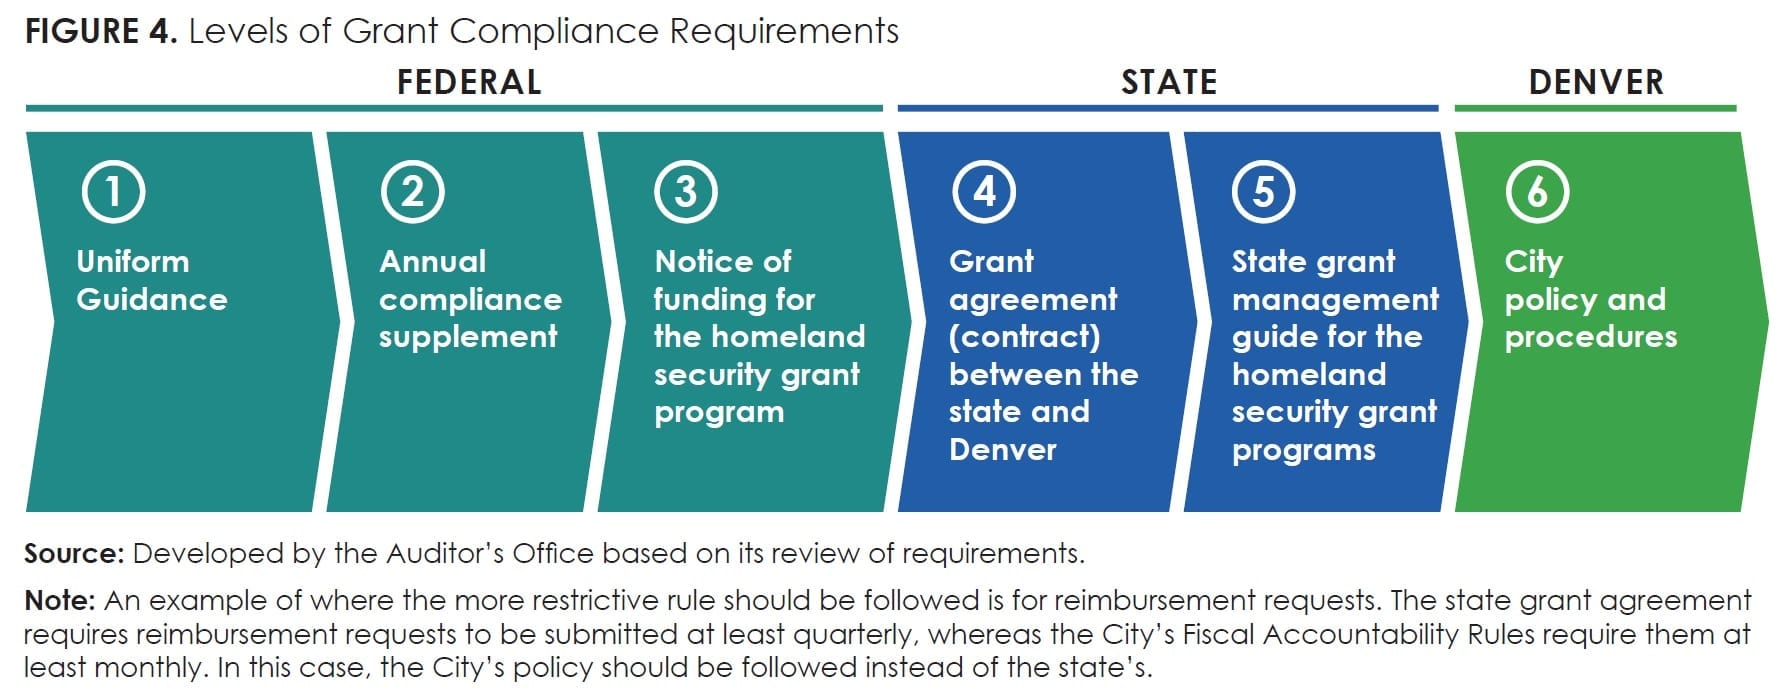 Figure4_Levels of Grant Compliance Requirements